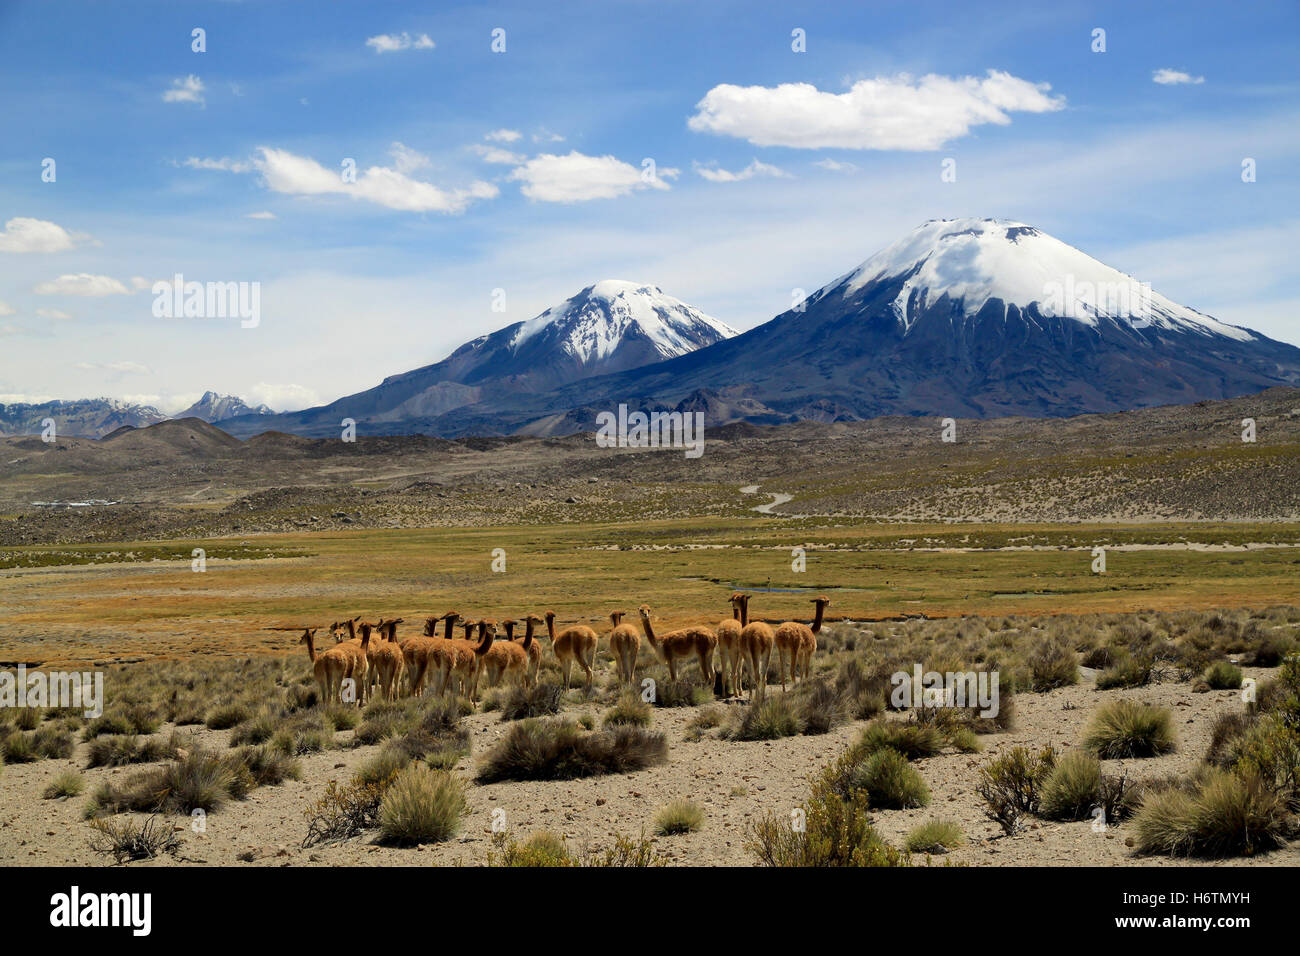 Vicunas near volcanoes. Payachata volcanic group at Lauca National Park, Chile - Stock Image